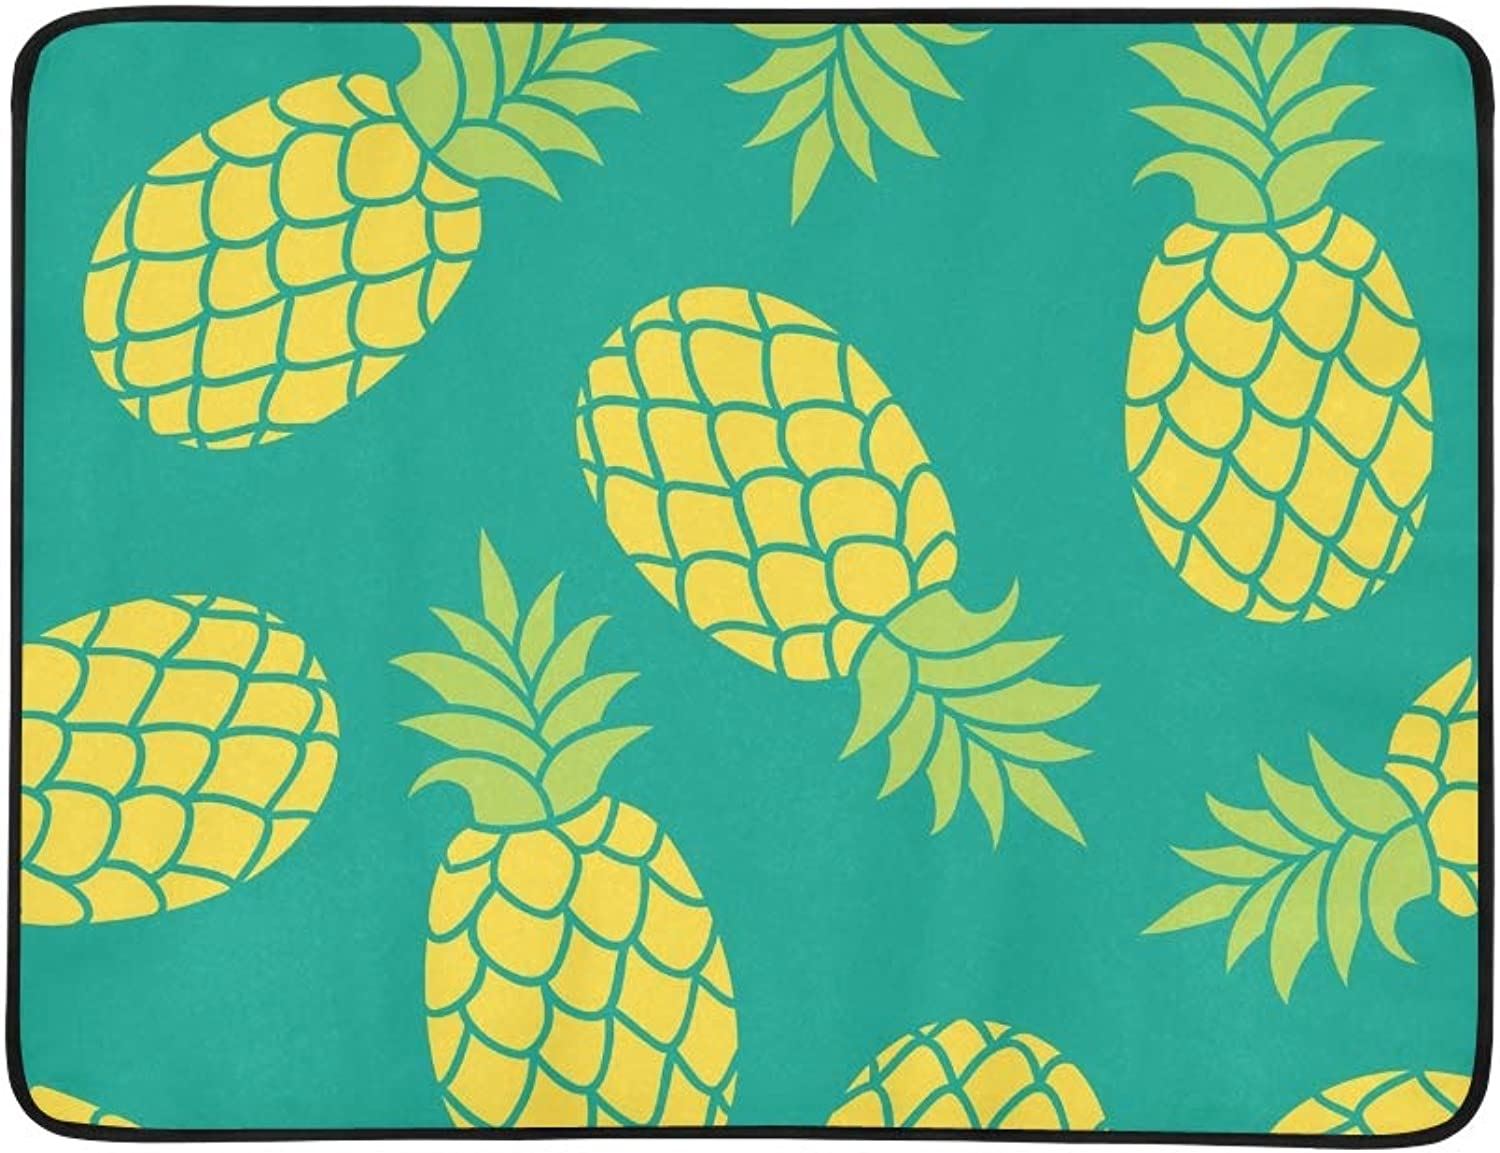 Pineapple Summer colorful Tropical Portable and Foldable Blanket Mat 60x78 Inch Handy Mat for Camping Picnic Beach Indoor Outdoor Travel